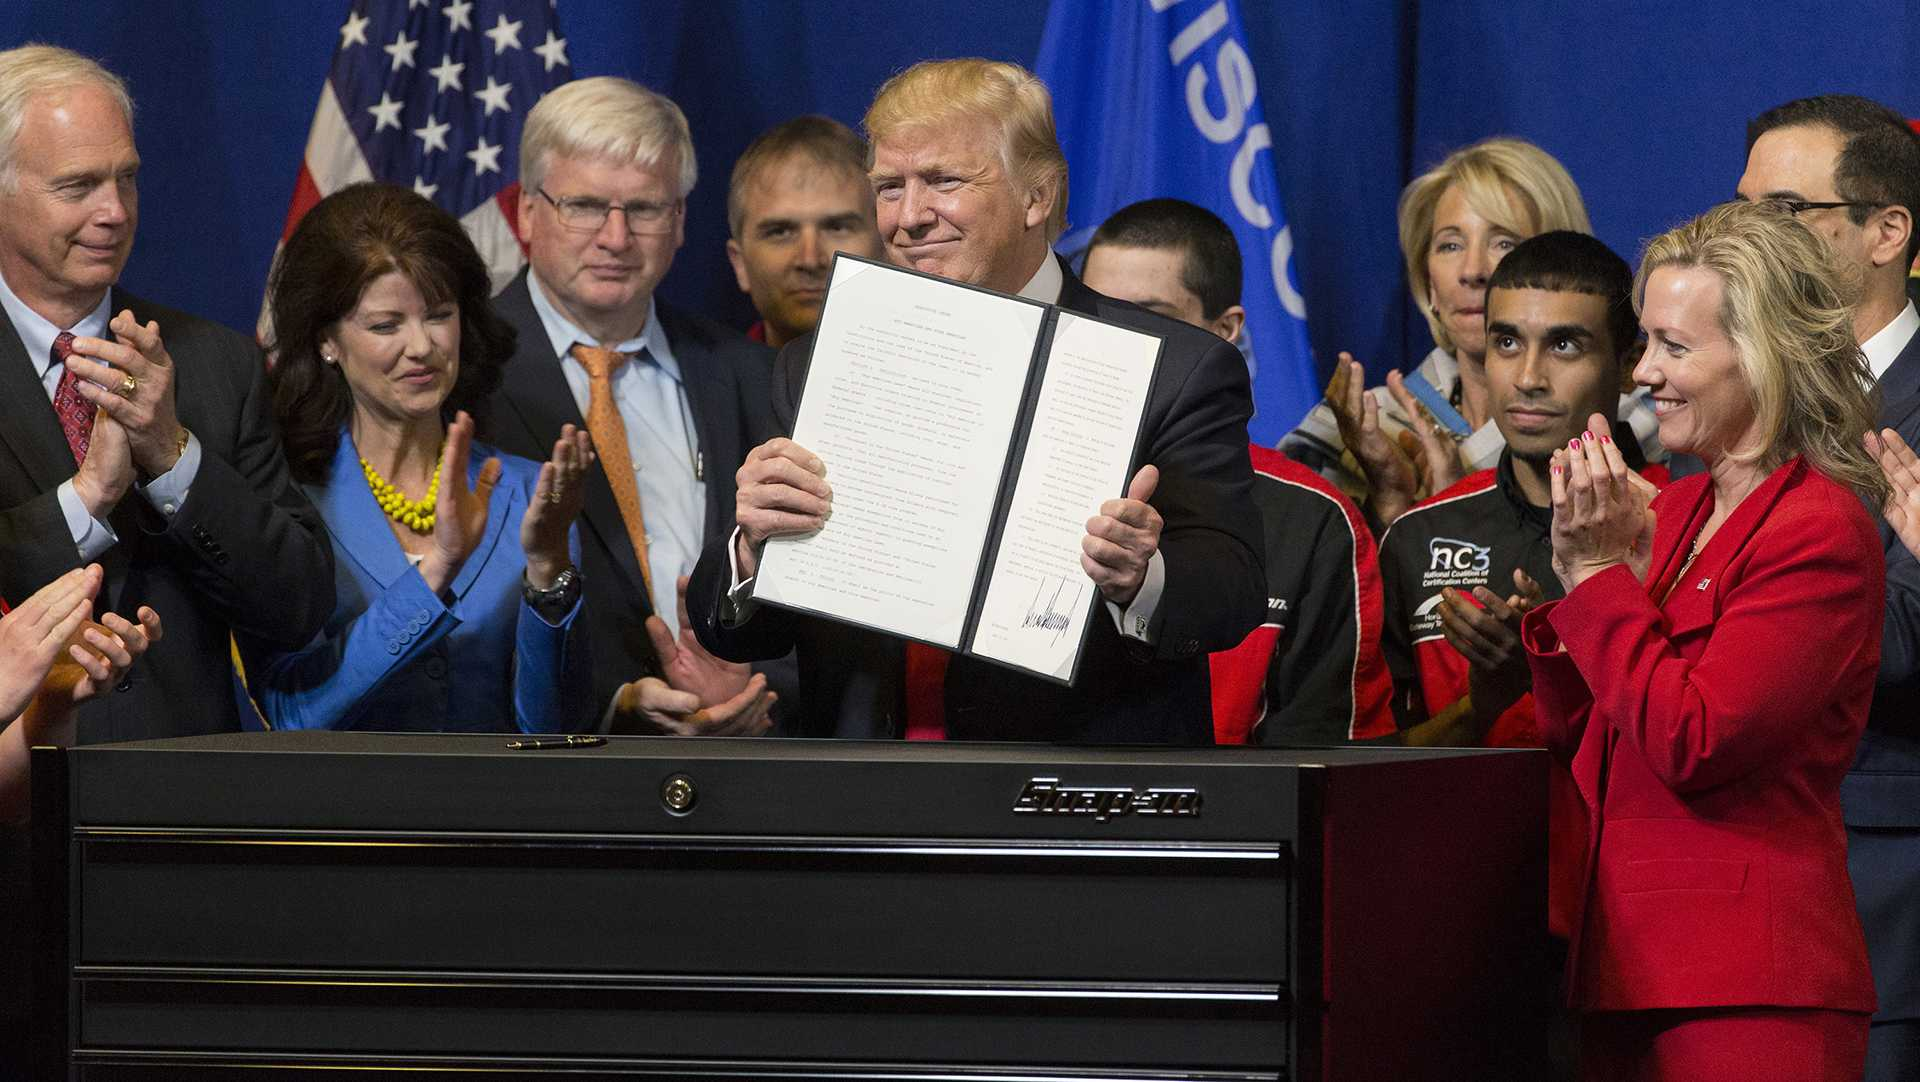 """President Donald Trump signs the so-called """"Buy American, Hire American"""" executive order on April 18, 2017, during a visit to Snap-on Inc. in Kenosha, Wis. The orders clamp down on guest worker visas and require federal agencies to buy more goods and services from U.S. companies and workers. (Mark Hoffman/Milwaukee Journal Sentinel/TNS)"""